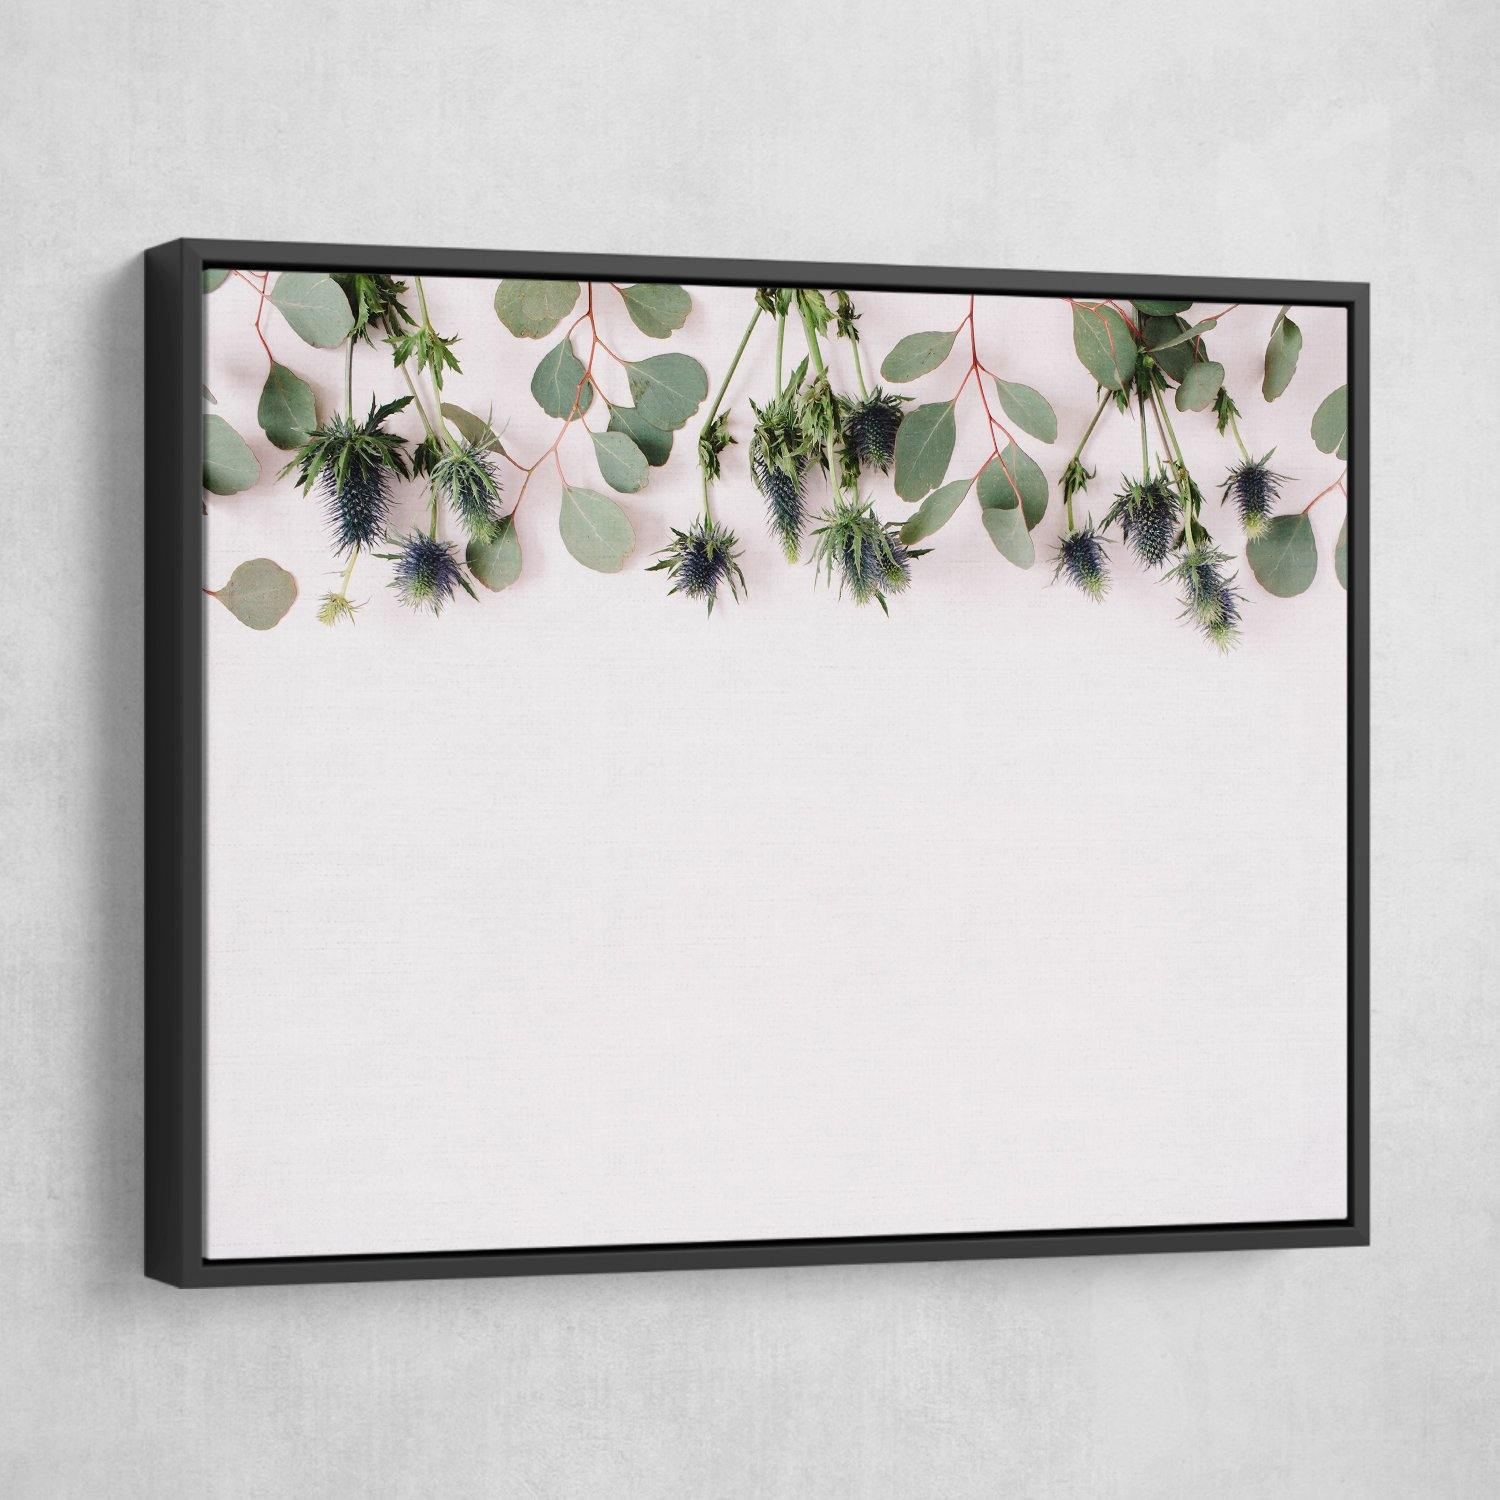 Eucalyptus wall art black frame